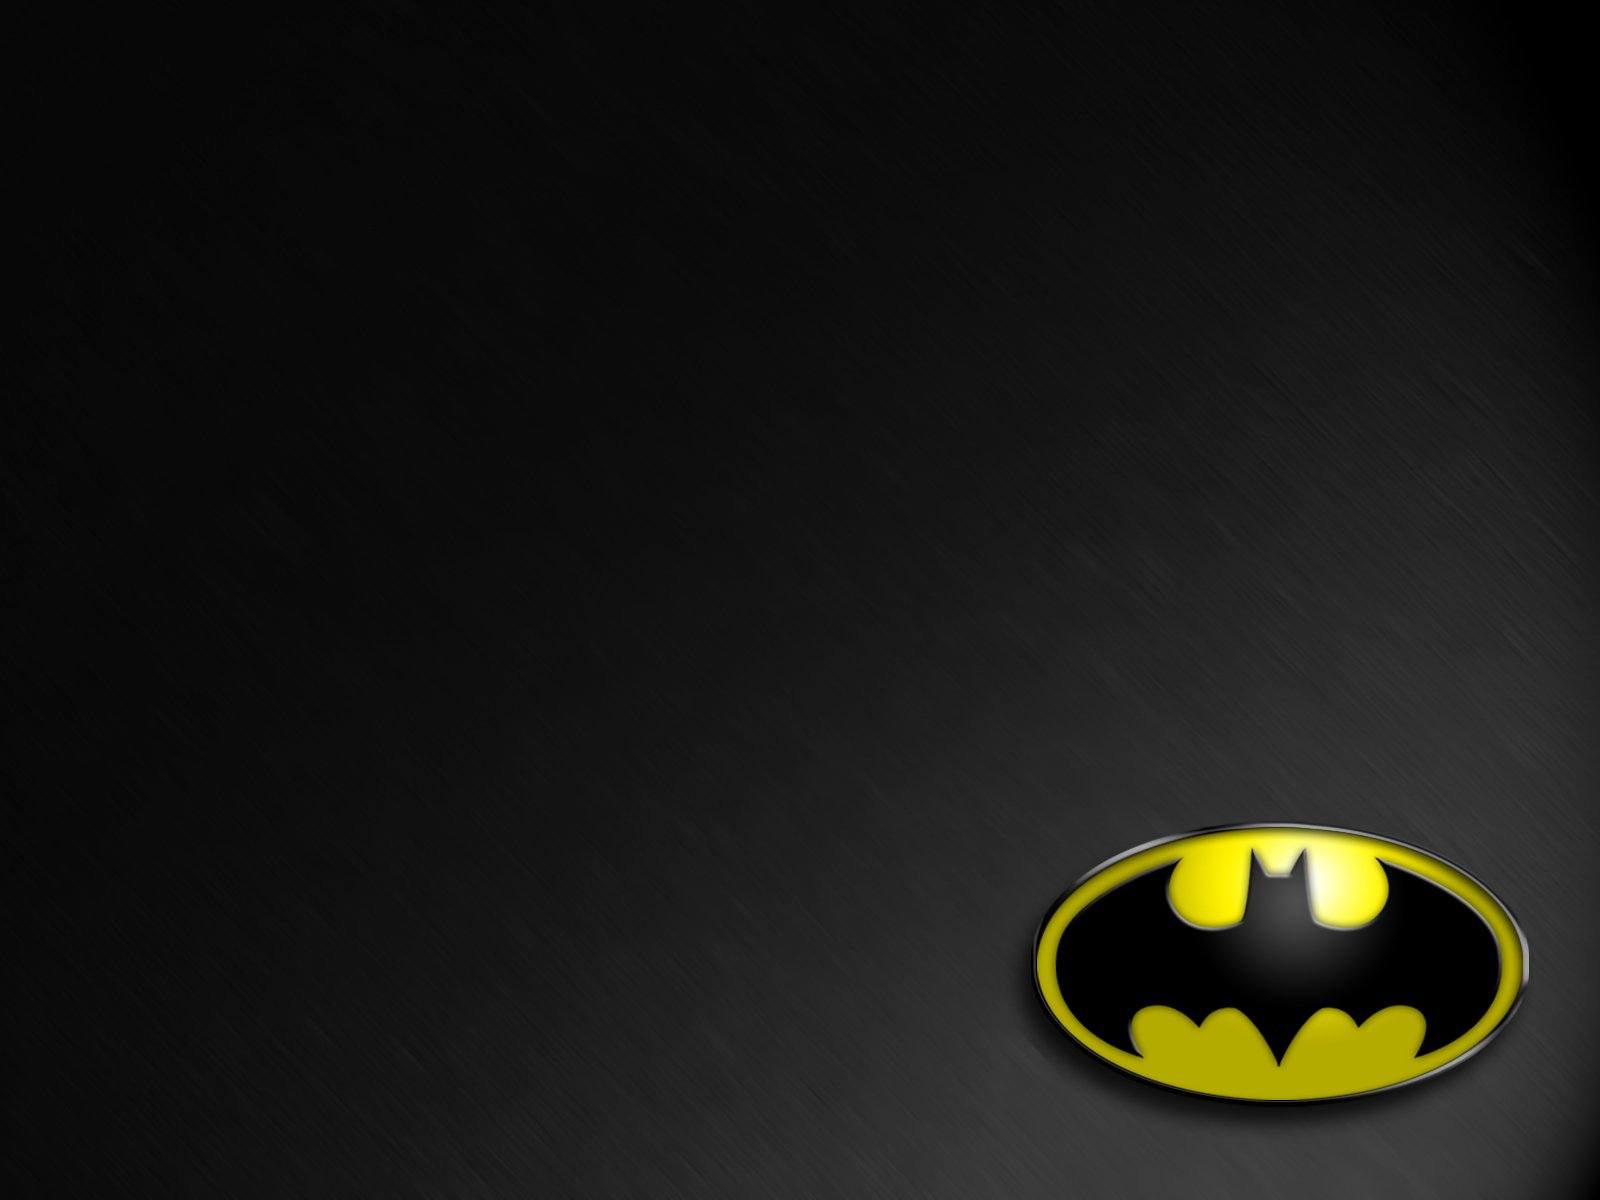 Batman Wallpaper And Background Image 1600x1200 Id 275547